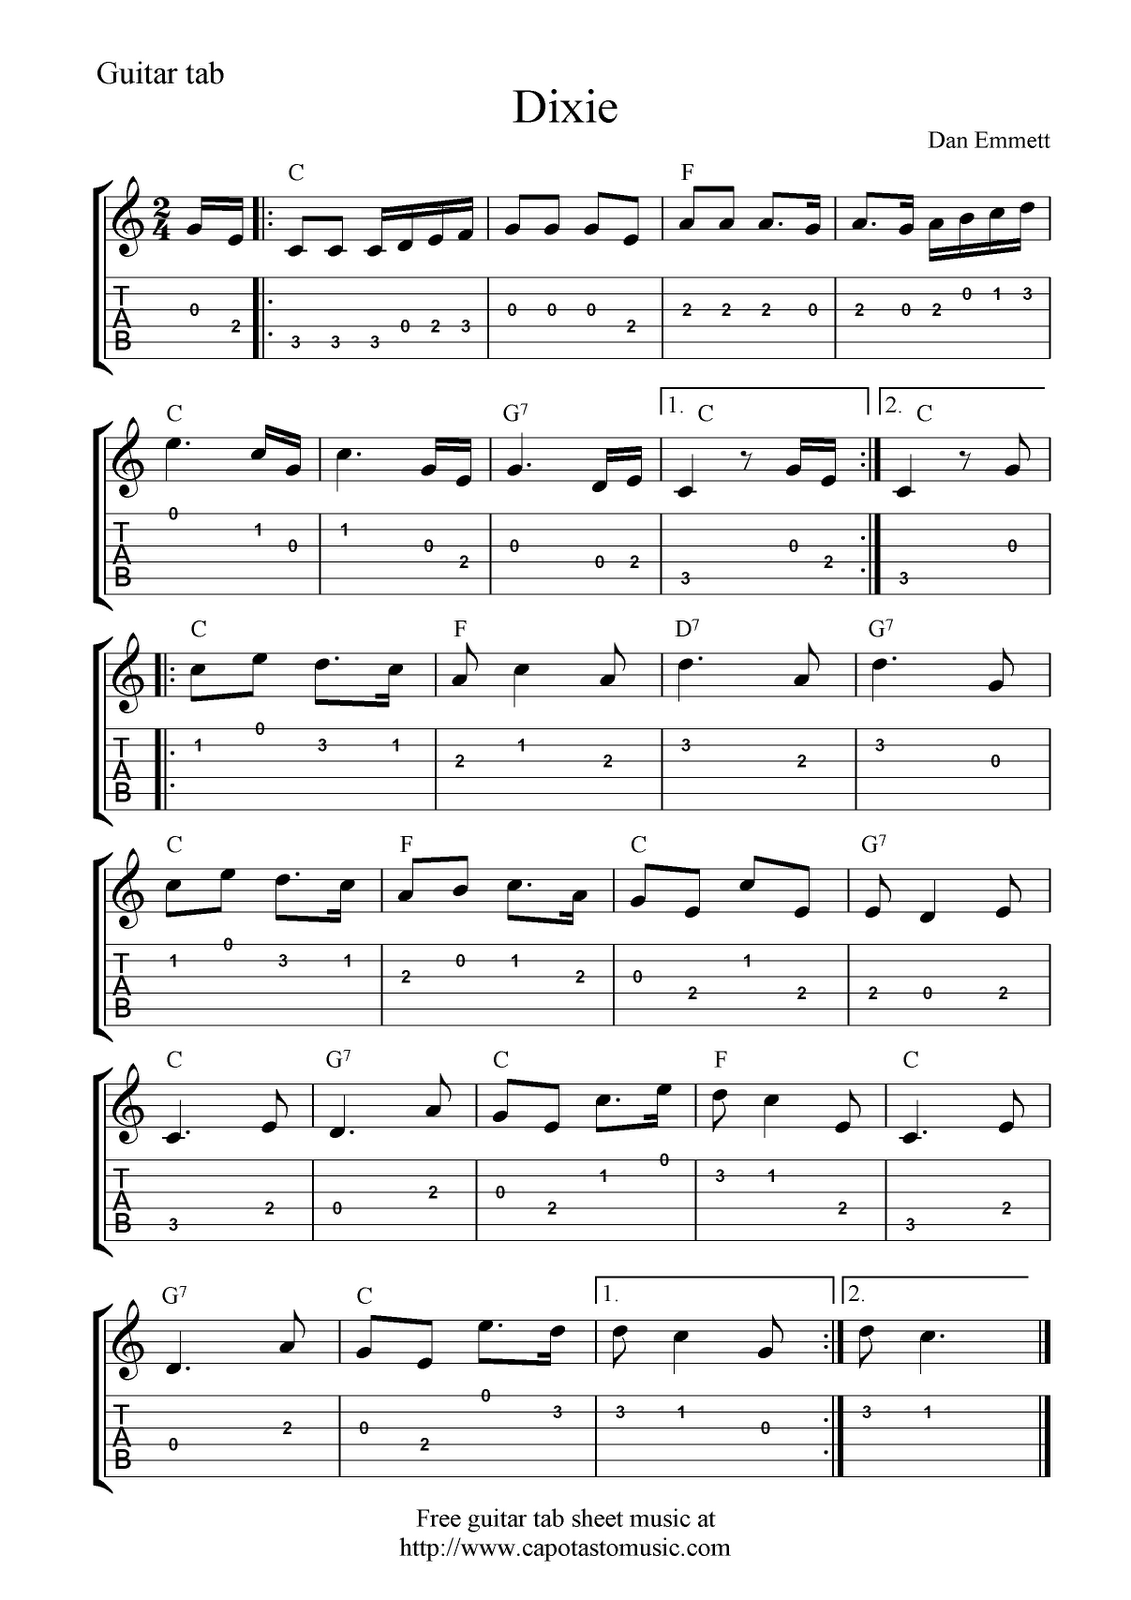 guitar music sheets for beginners free guitar tab sheet music dixie guitar in 2019 guitar. Black Bedroom Furniture Sets. Home Design Ideas